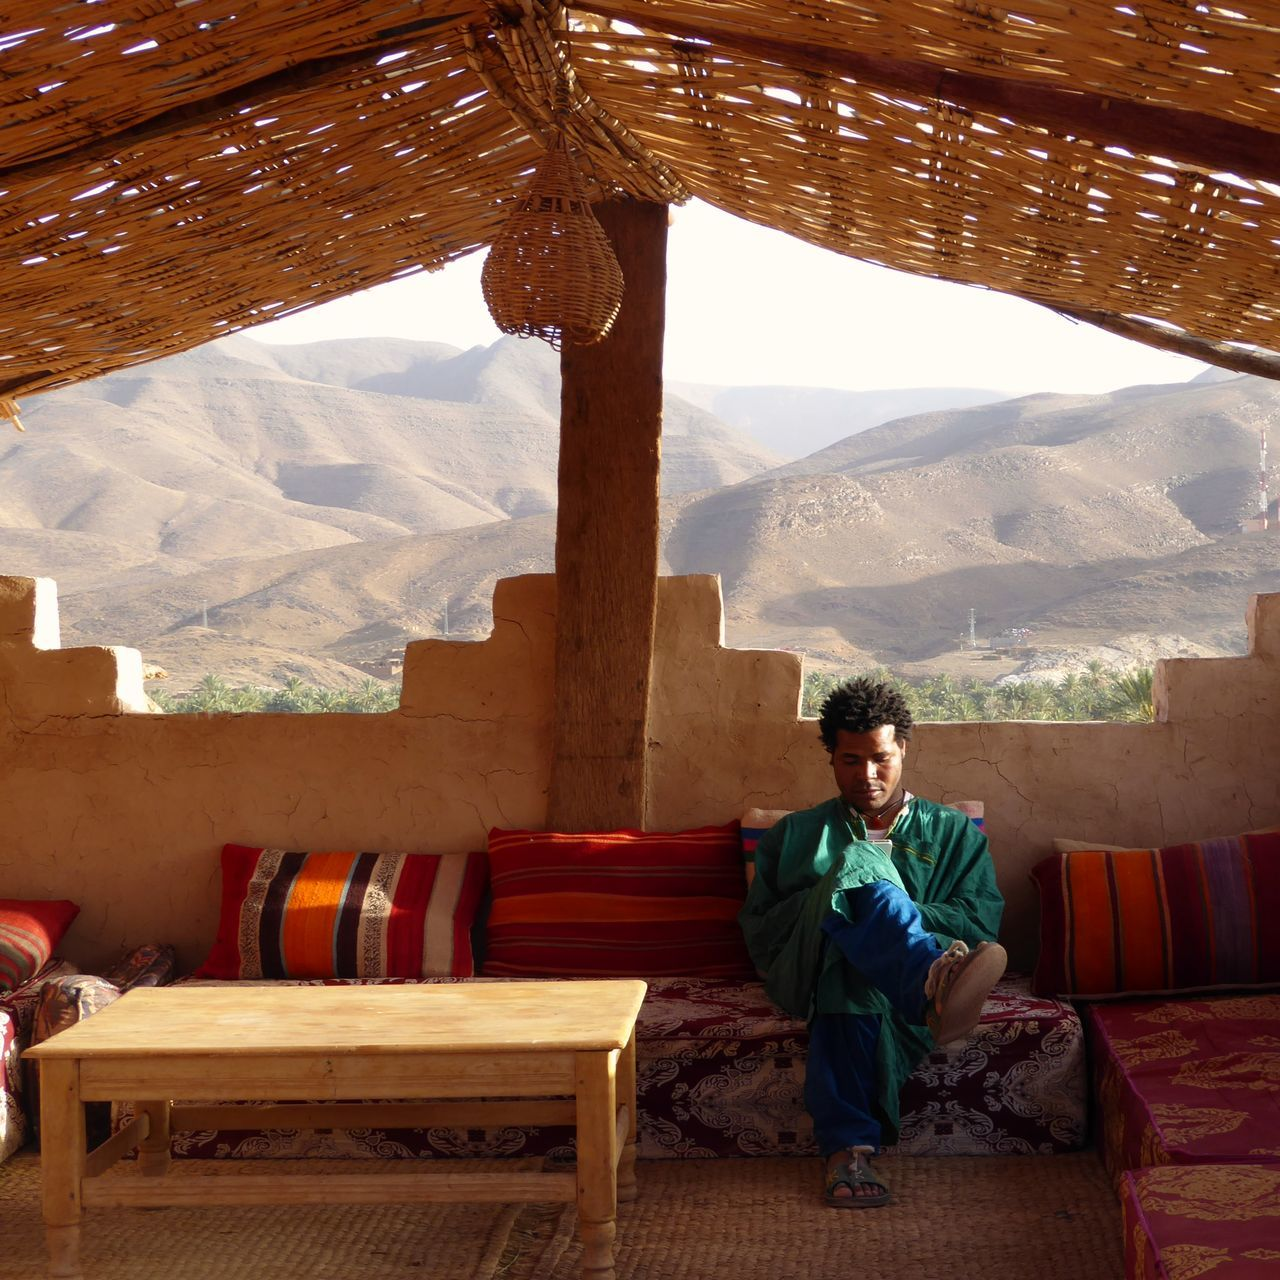 Man Relaxing On Sofa At Hotel Roof Terrace With Mountains In Background